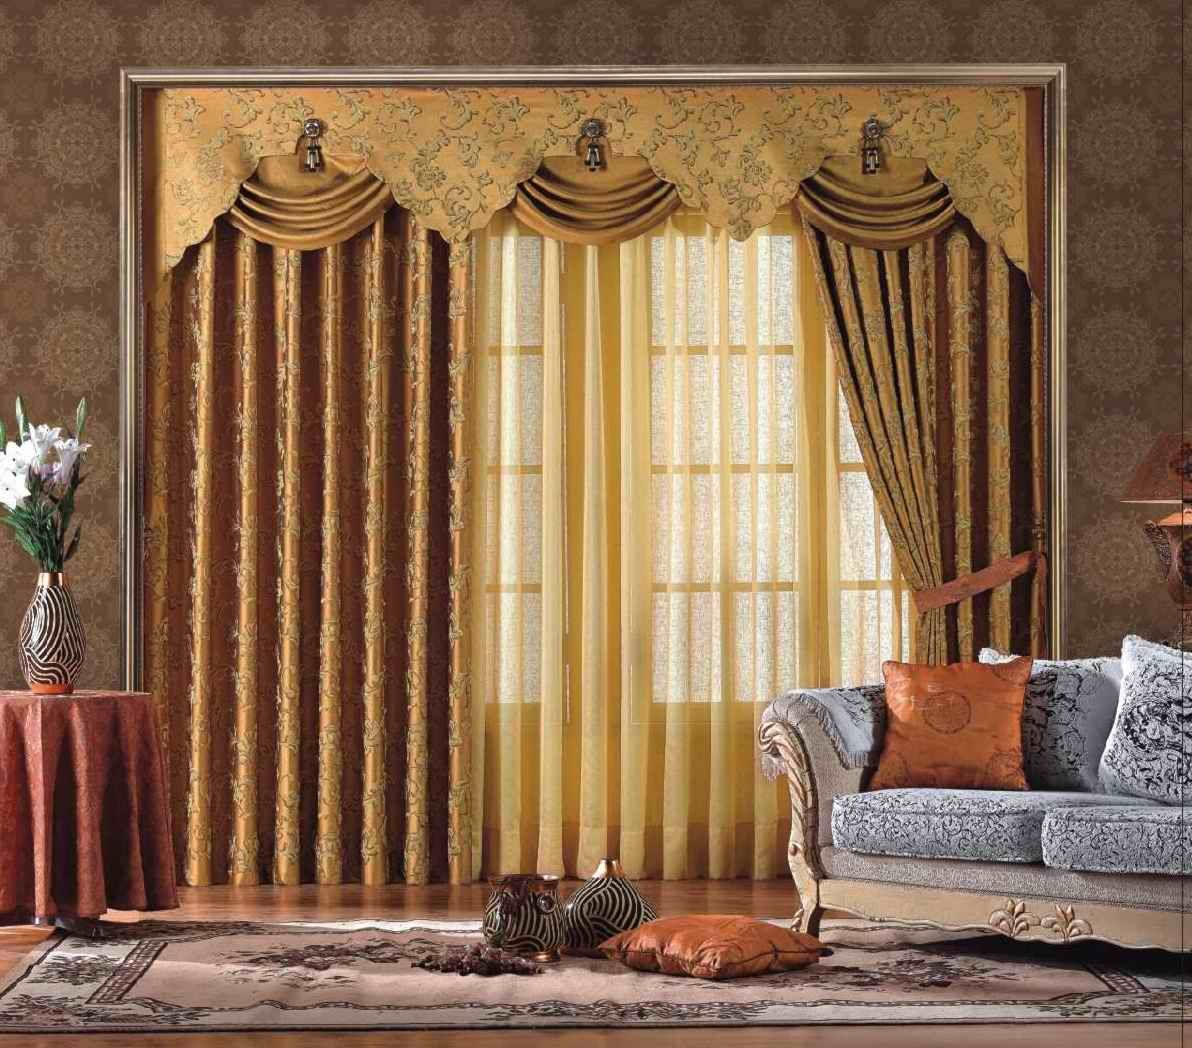 Living Room : Living Room Window Treatment Ideas For Living Room  Decorations. Curtains For Windowsu201a Curtains For Kitchen Windowsu201a Curtains  Kitchen Window ...